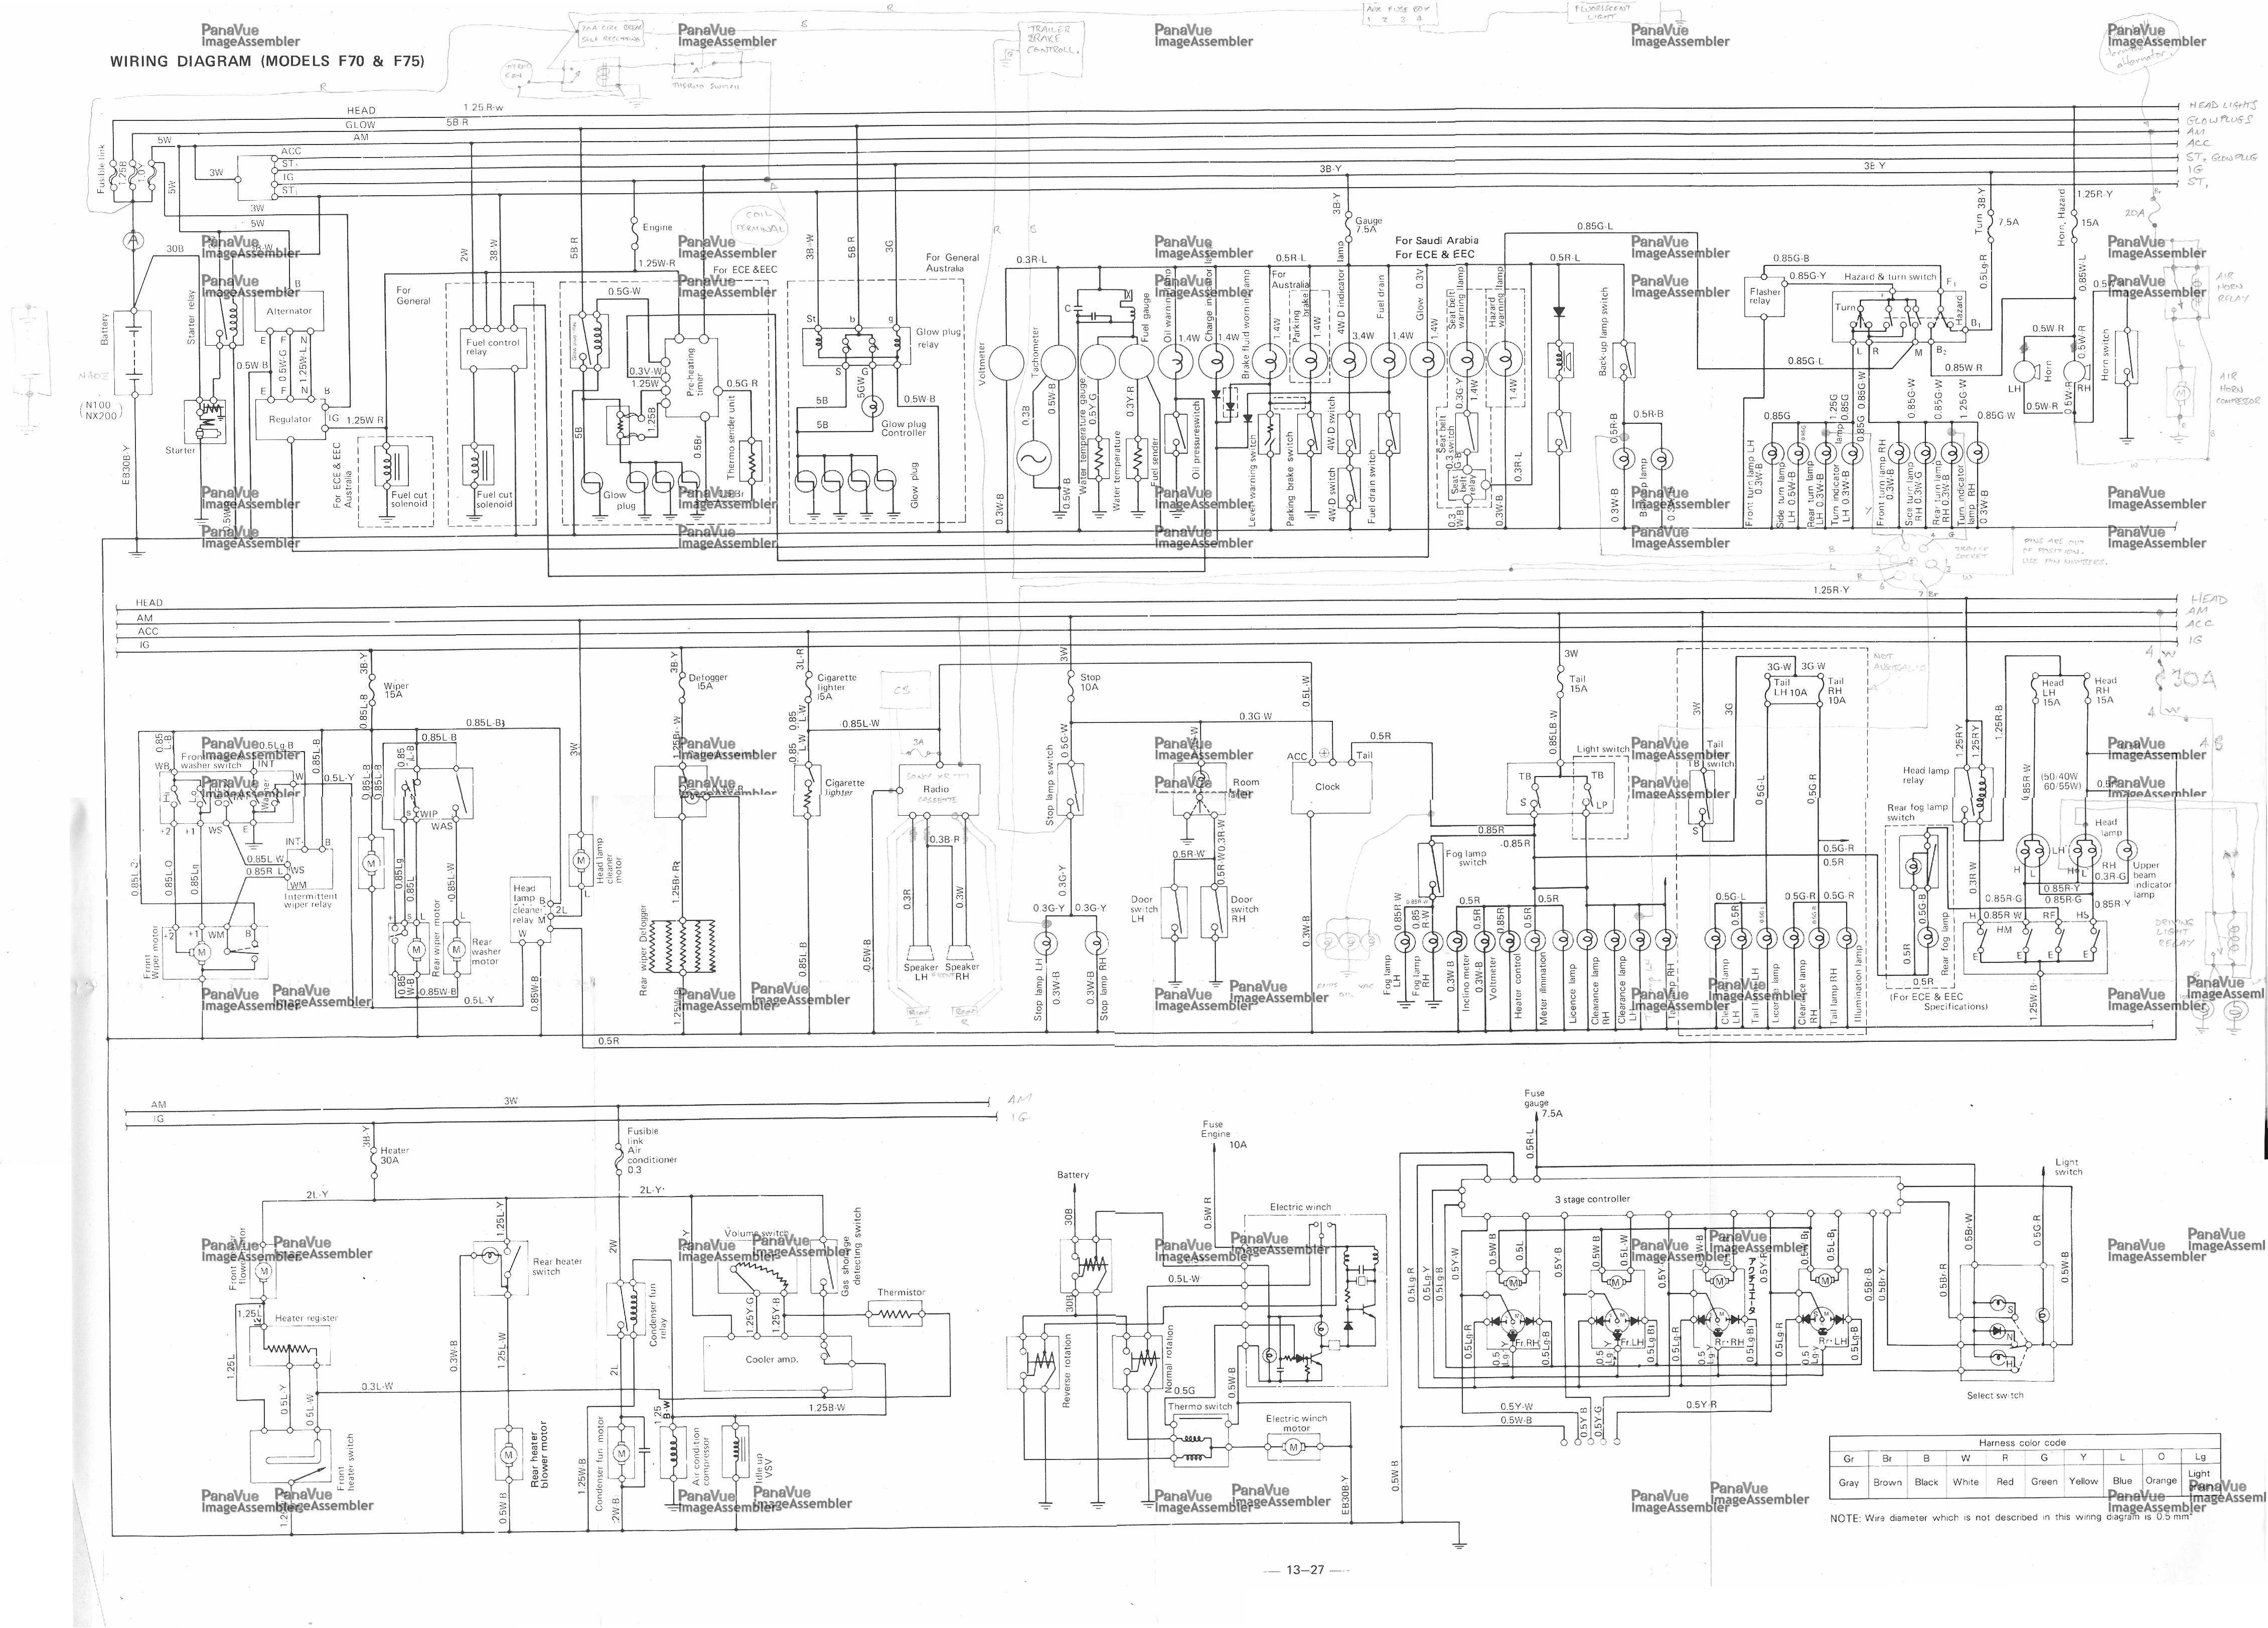 Beautiful Cb450 Wiring Diagram Pictures Inspiration - Wiring ...